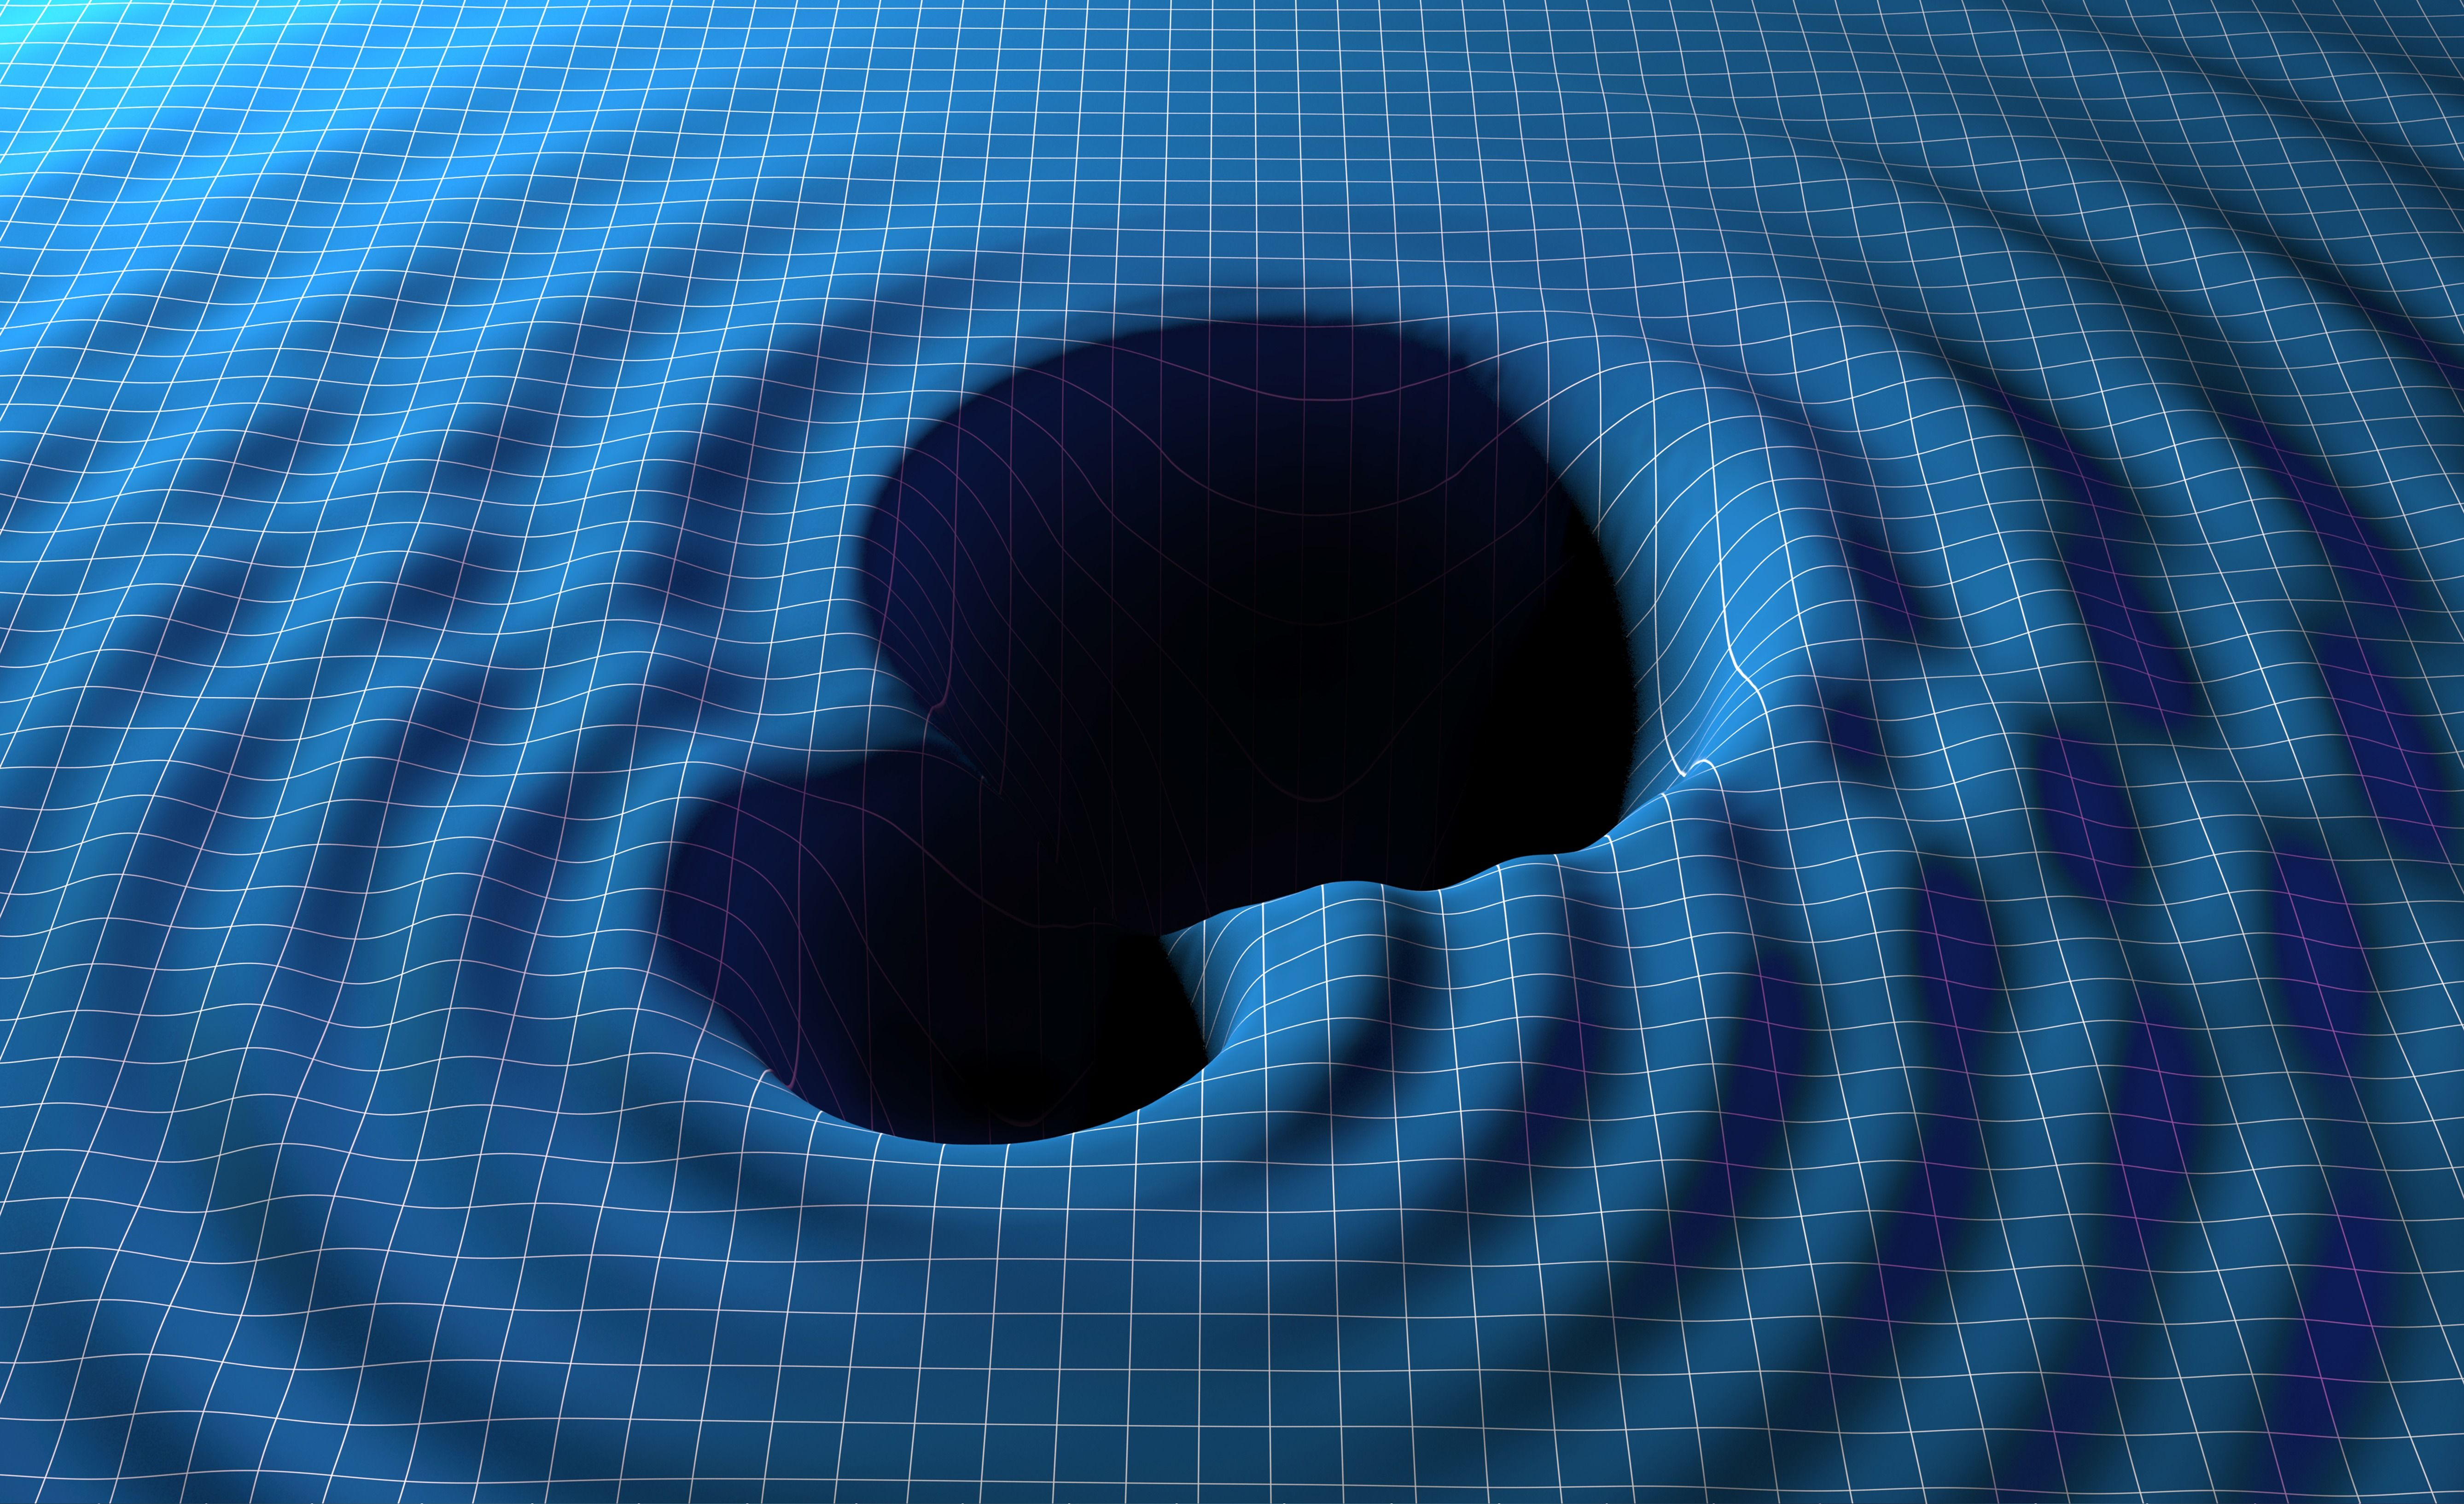 Some Black Holes May Actually Be Secret Wormholes